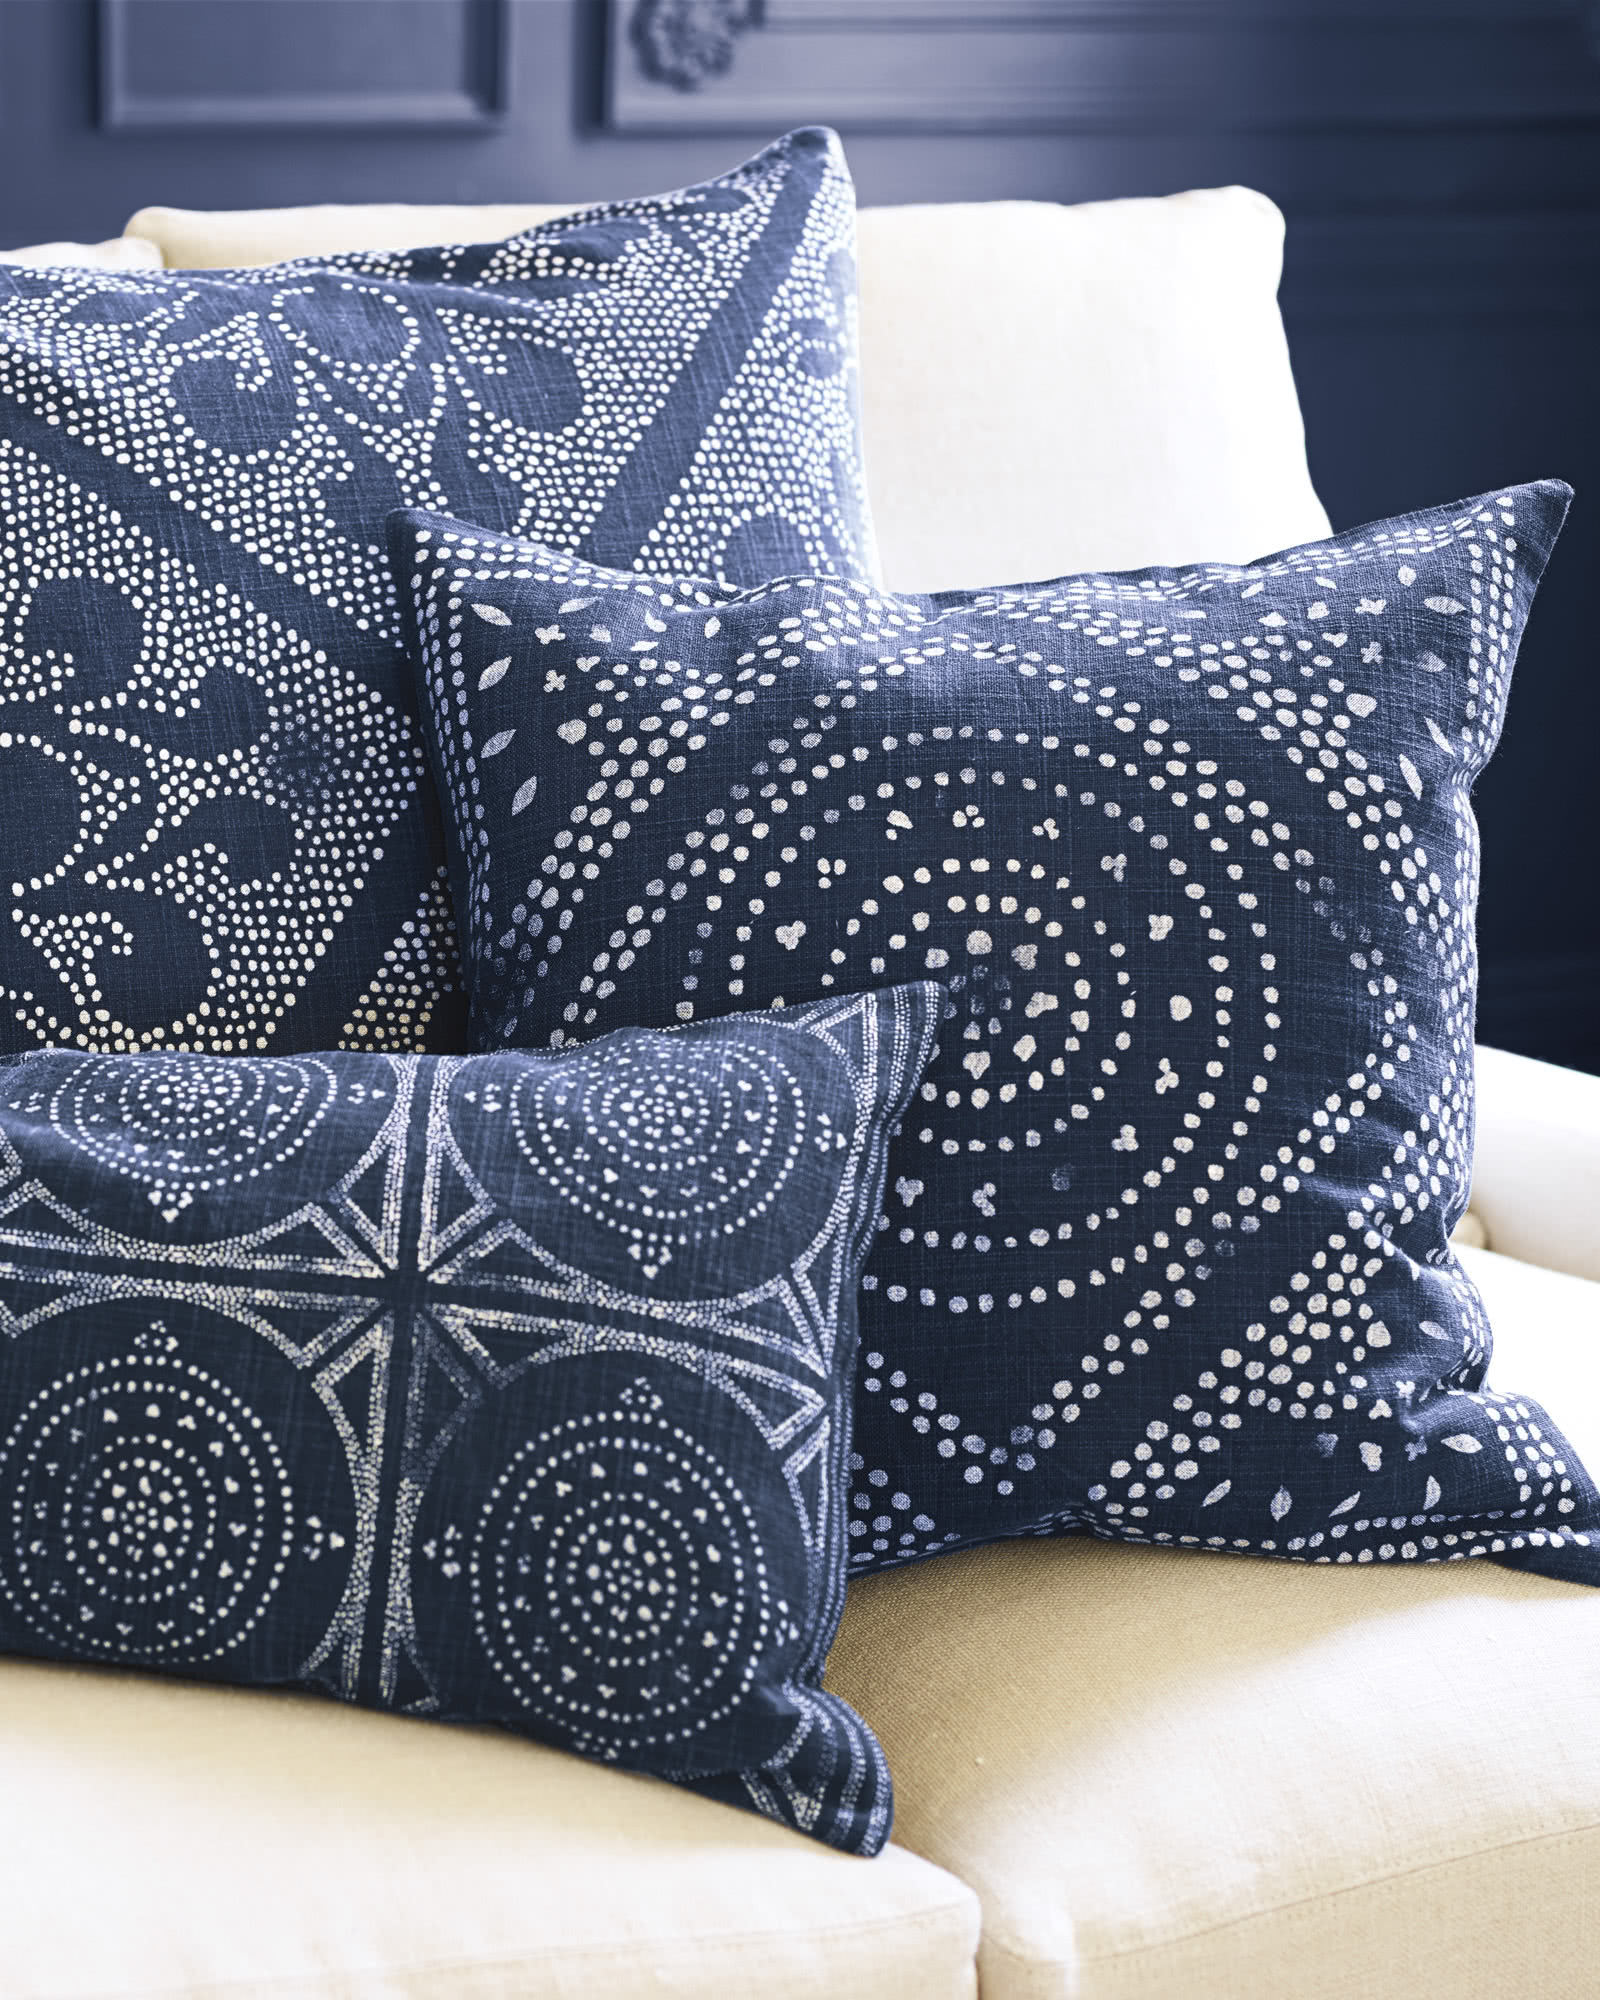 Camille Mosaic Lumbar Pillow Cover  Serena  Lily